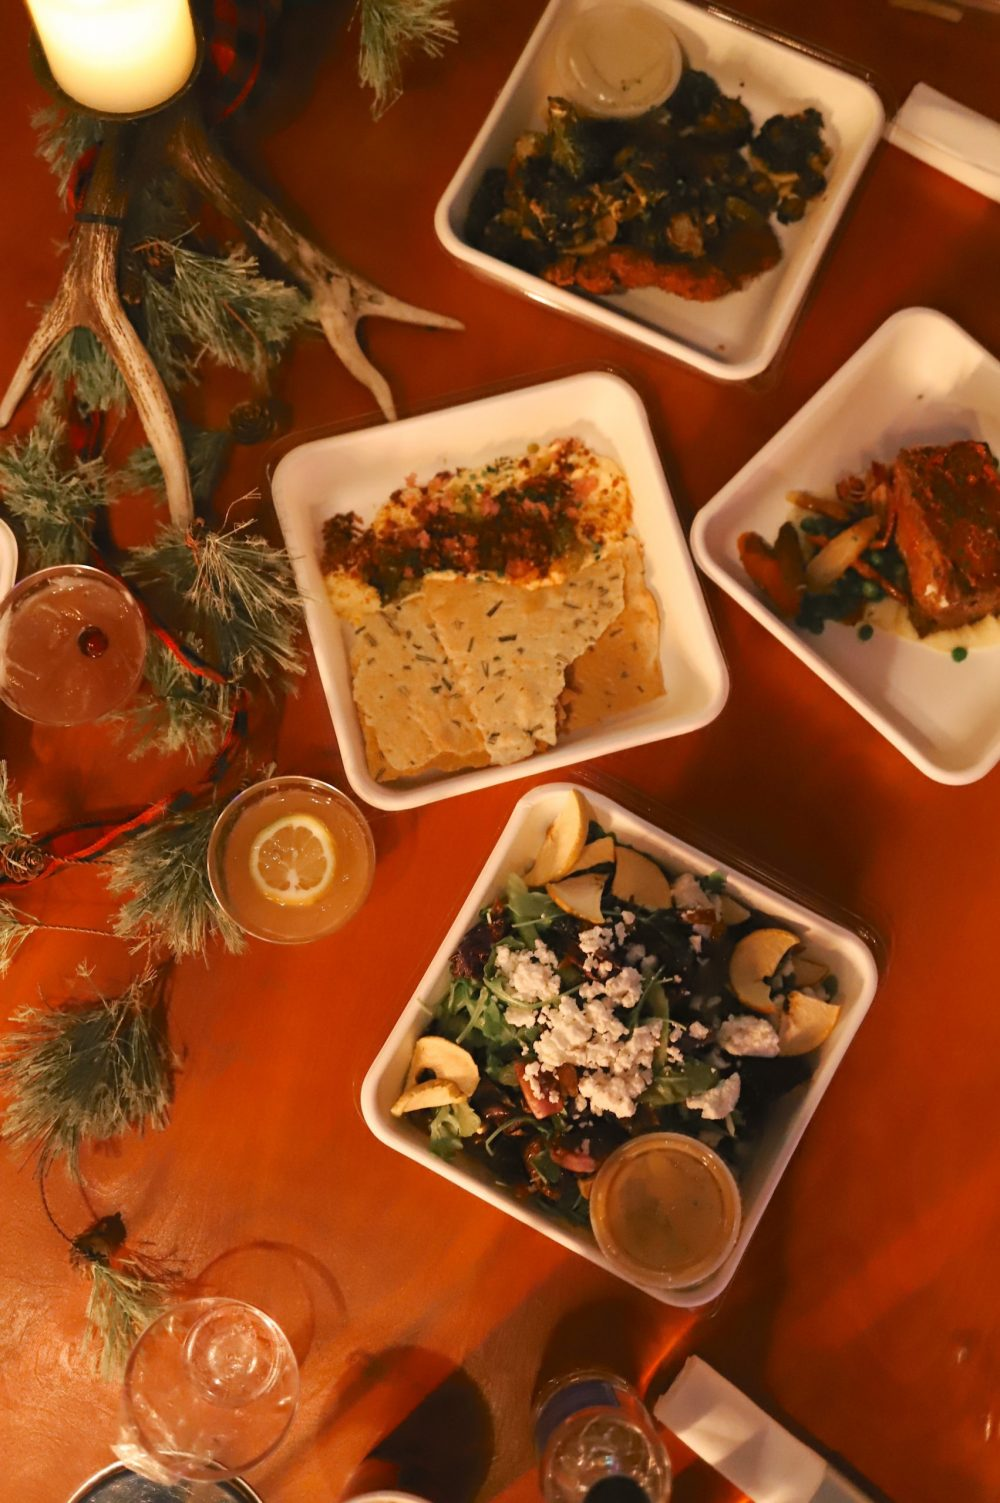 One of the Best Secret Winter Sun Destinations, Scottsdale Arizona. Family-friendly dinner at fun holiday pop up restaurant The Lodge at Scottsdale Christmas at the Princess |Guide by popular Florida travel blog, Fresh Mommy Blog: image of The Lodge food.